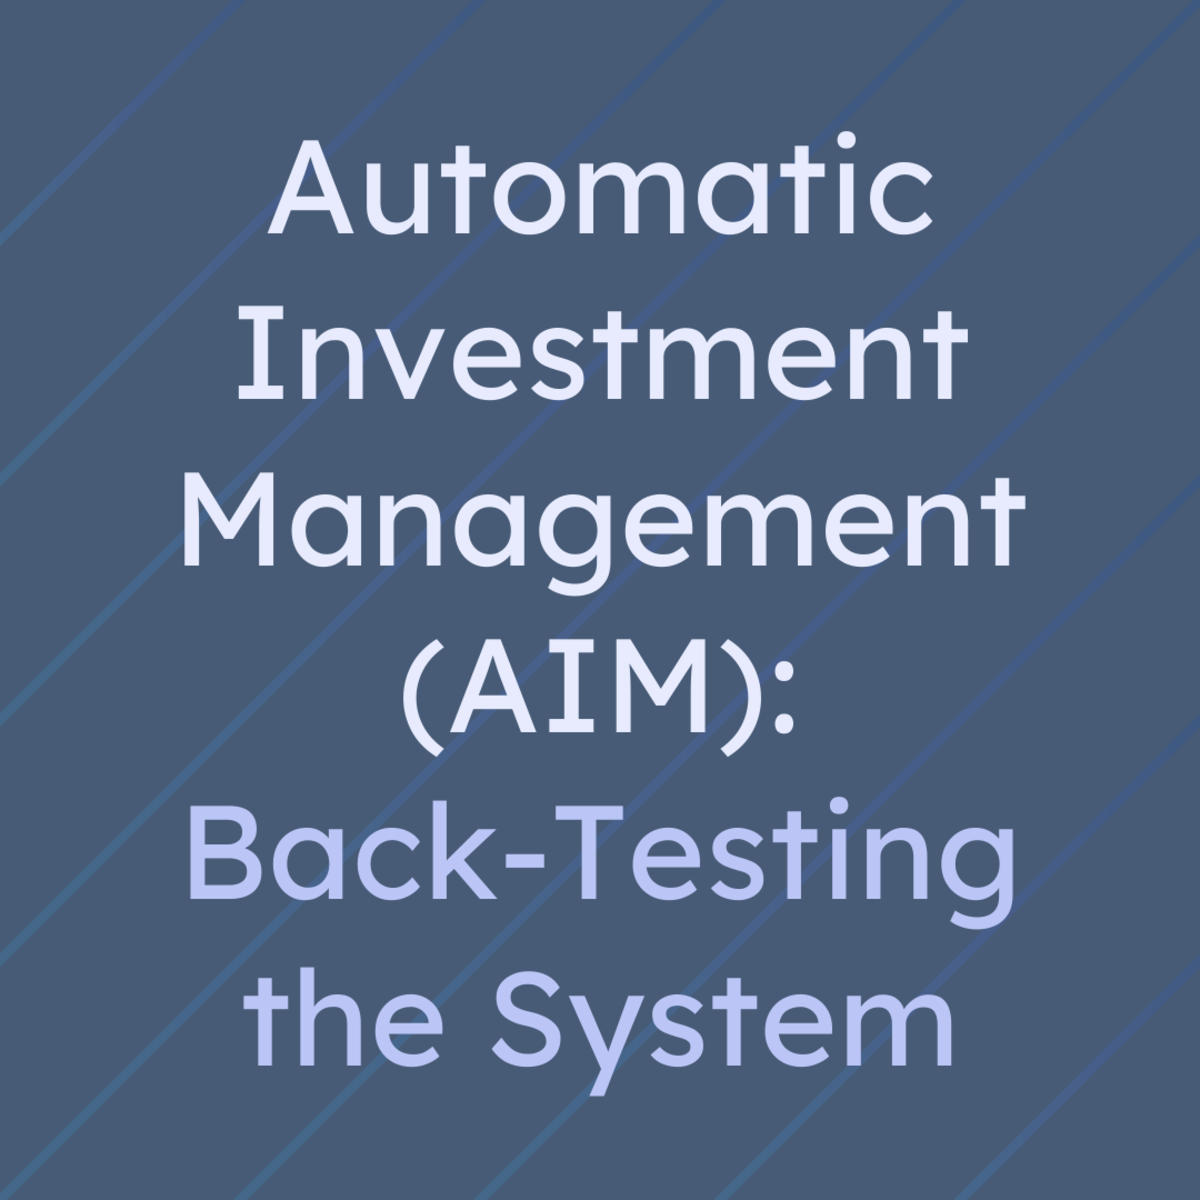 Back-Testing the Robert Lichello Automatic Investment Management (AIM) System for Timing the Stock Market